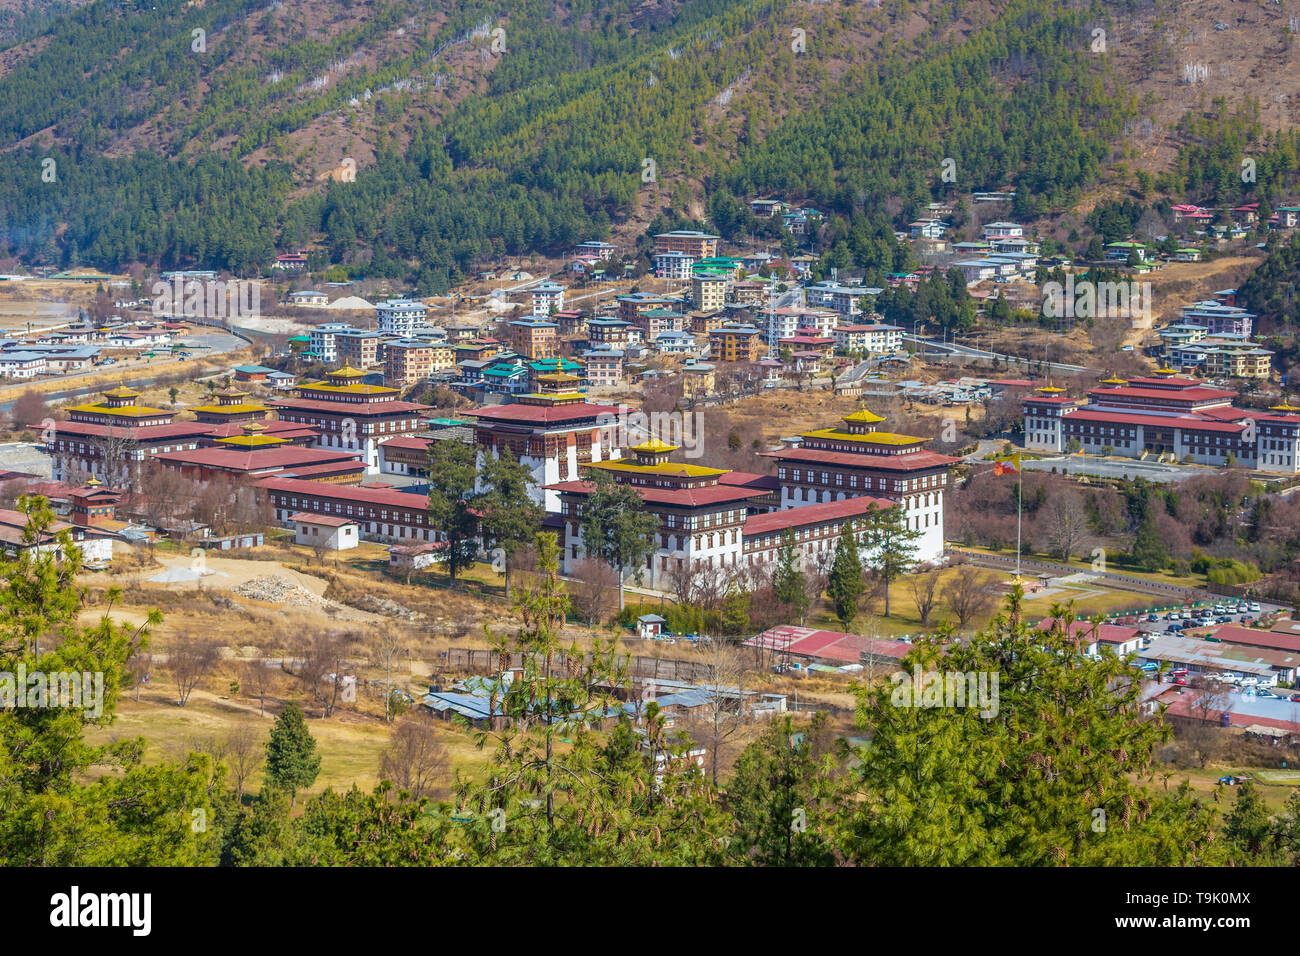 The main Dzong in the capital of Bhutan. It houses a monastery and governmental office rooms which are combined with the kingship. - Stock Image